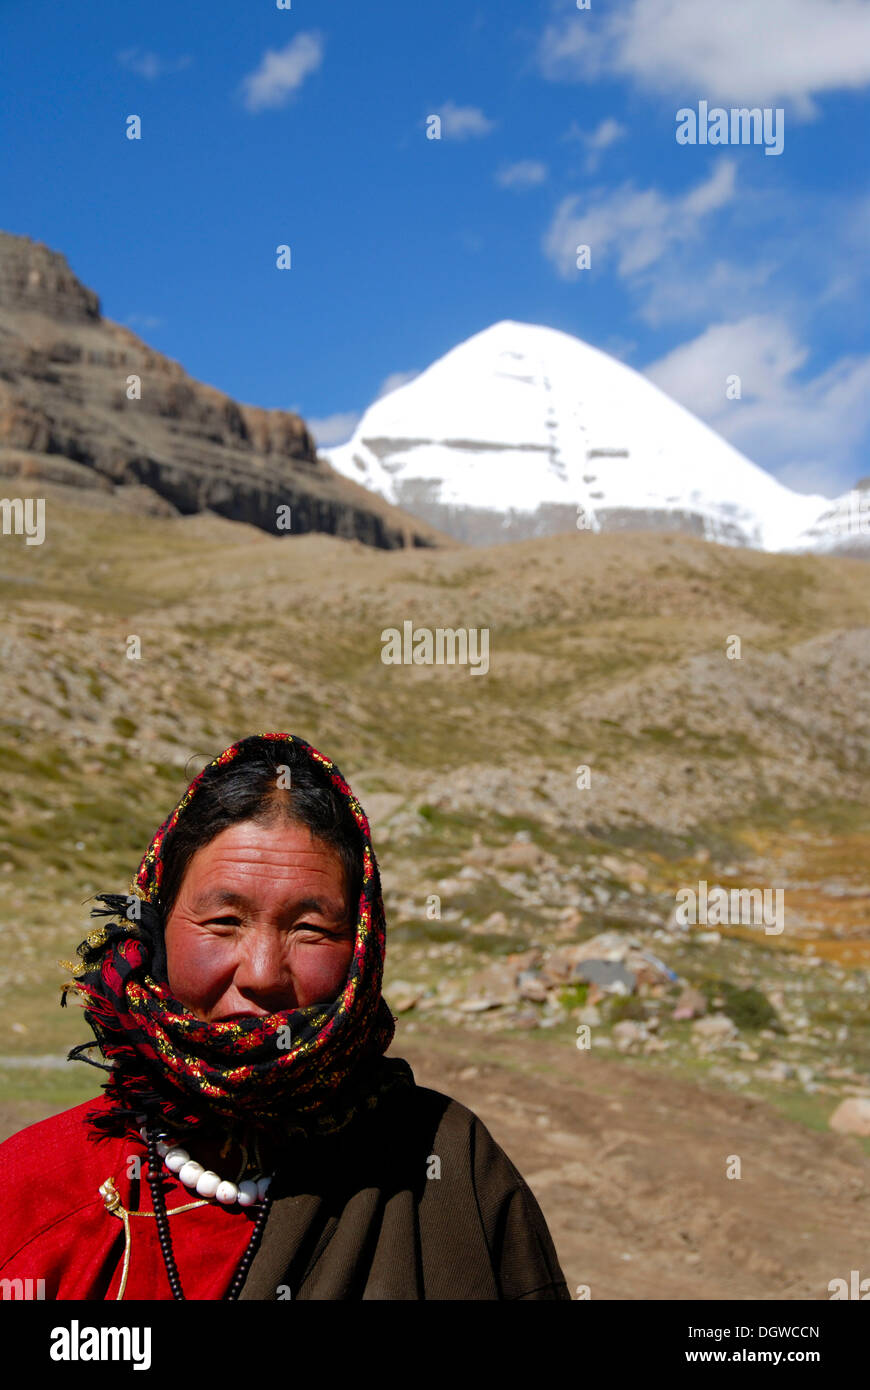 Tibetan Buddhism, Tibetan woman, believer, portrait, snow-covered sacred Mount Kailash, south side, Selung Gompa - Stock Image